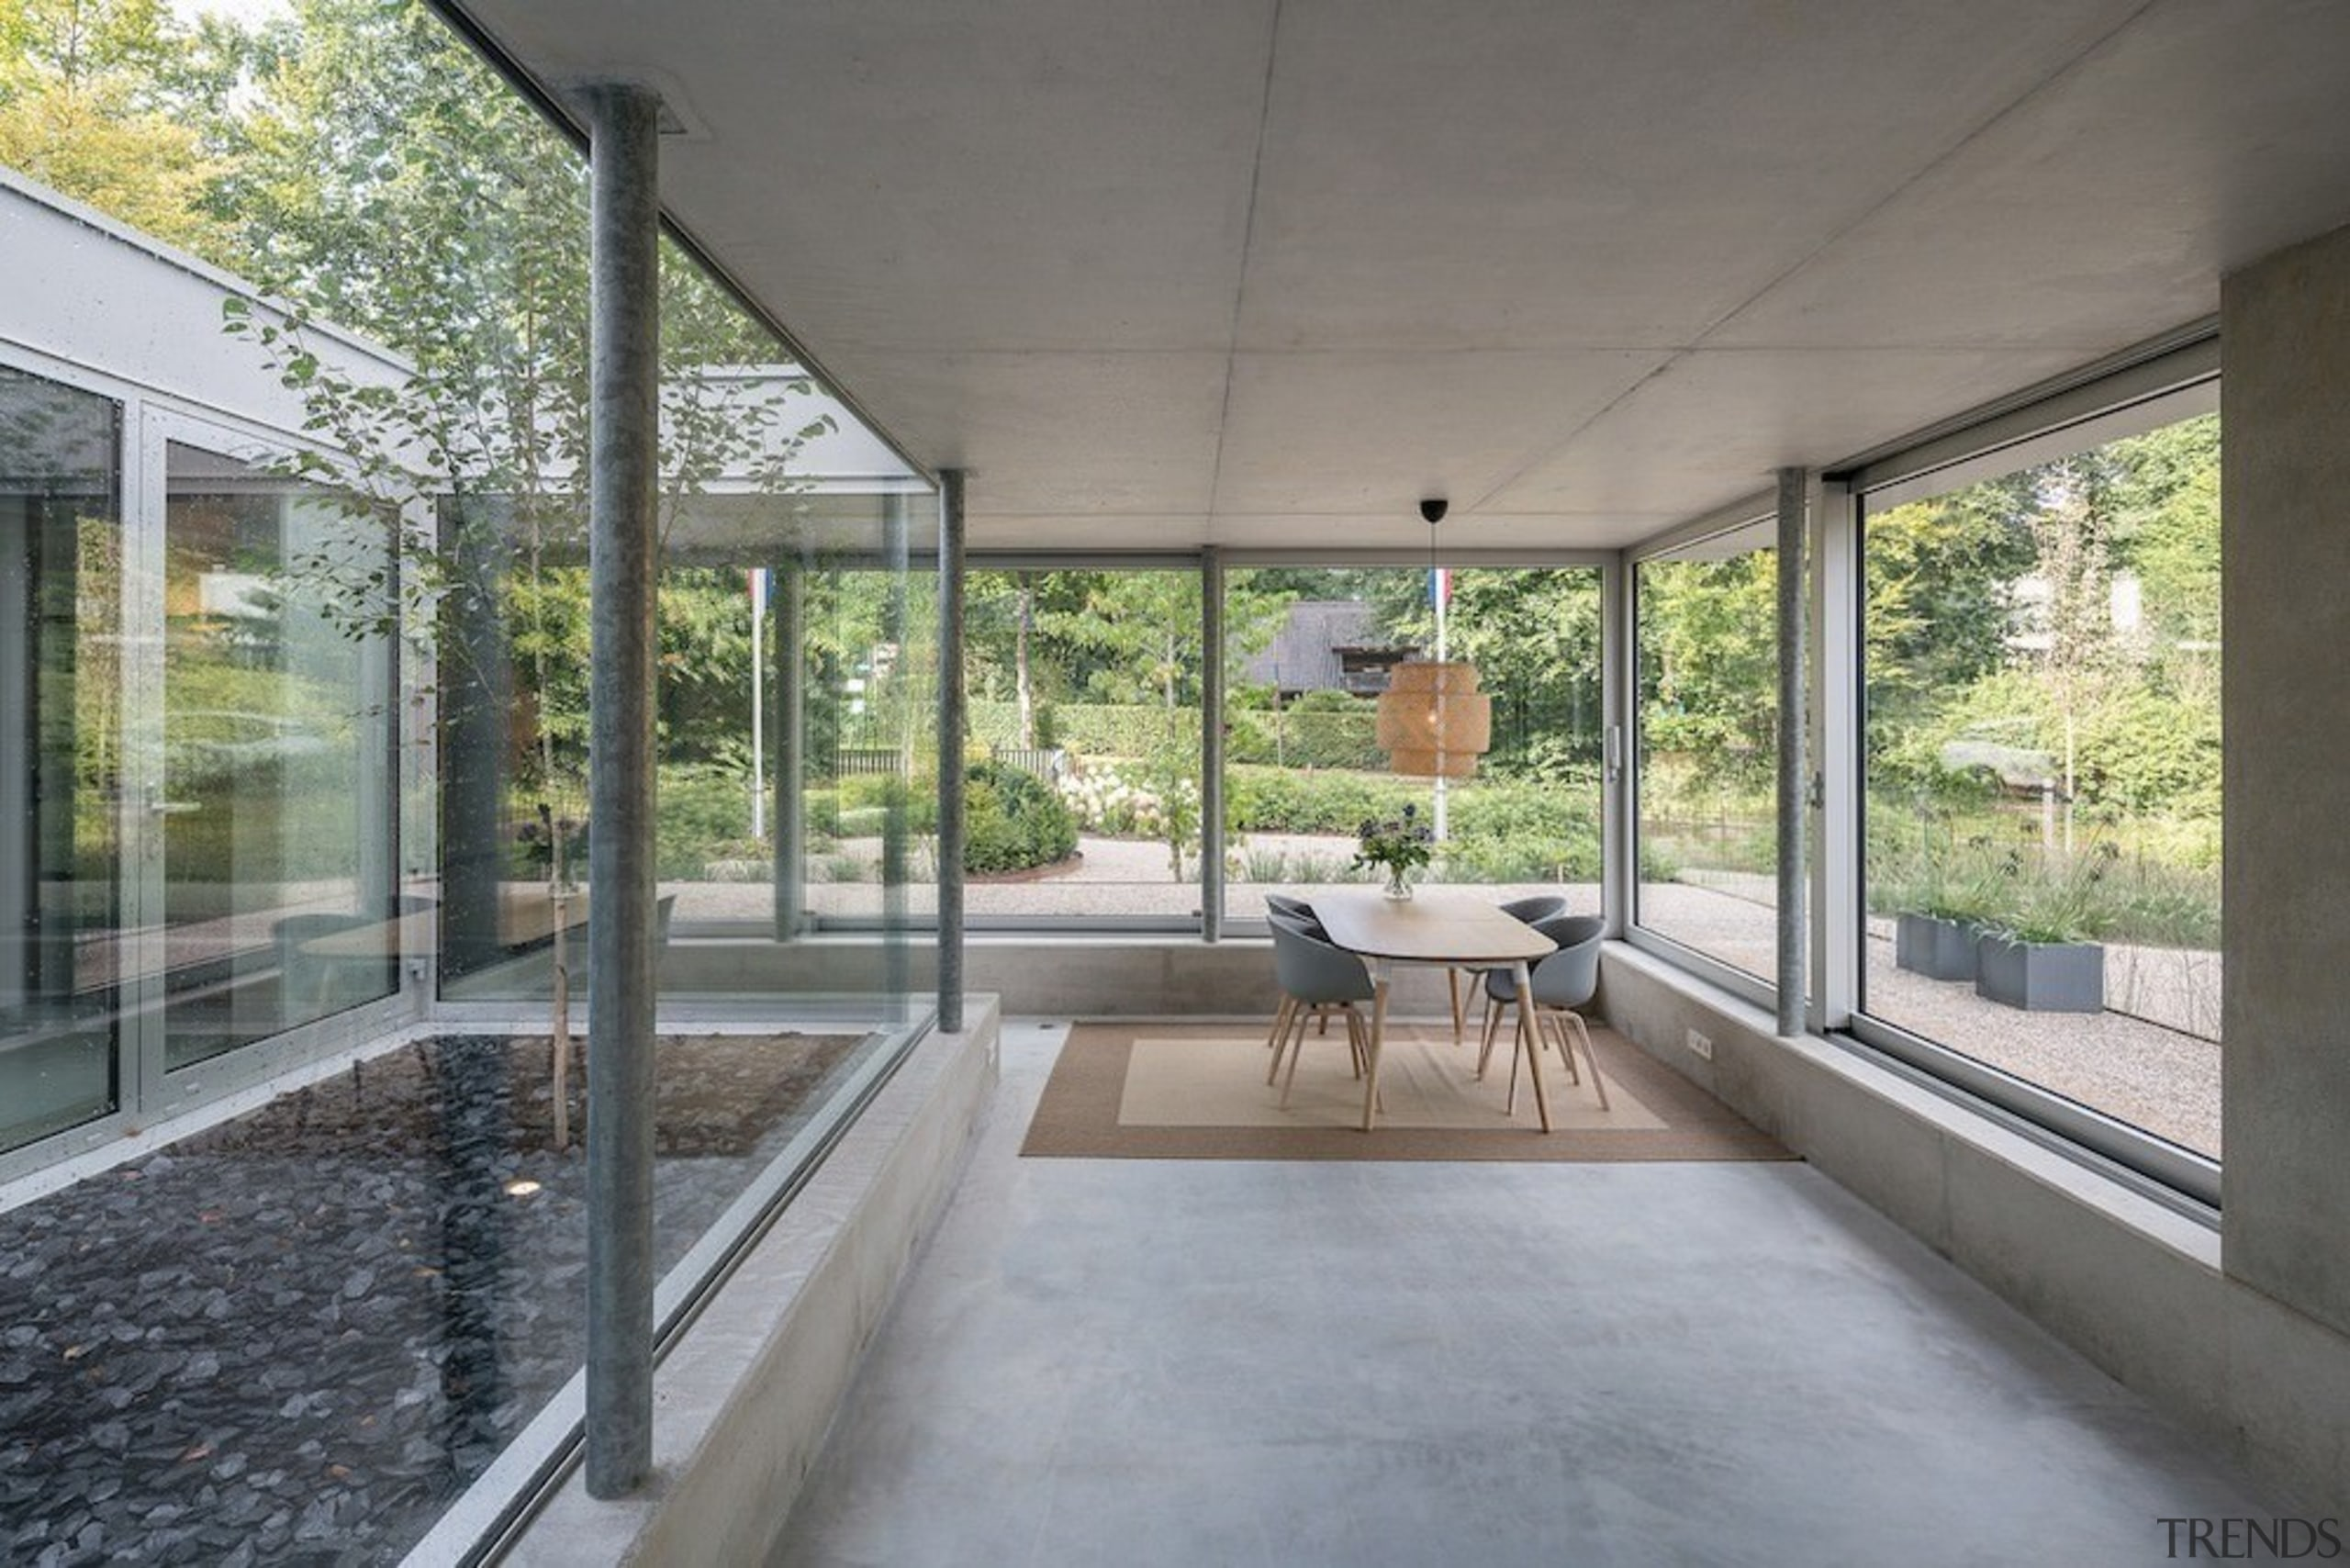 A view of the seating area with views architecture, daylighting, house, porch, real estate, window, gray